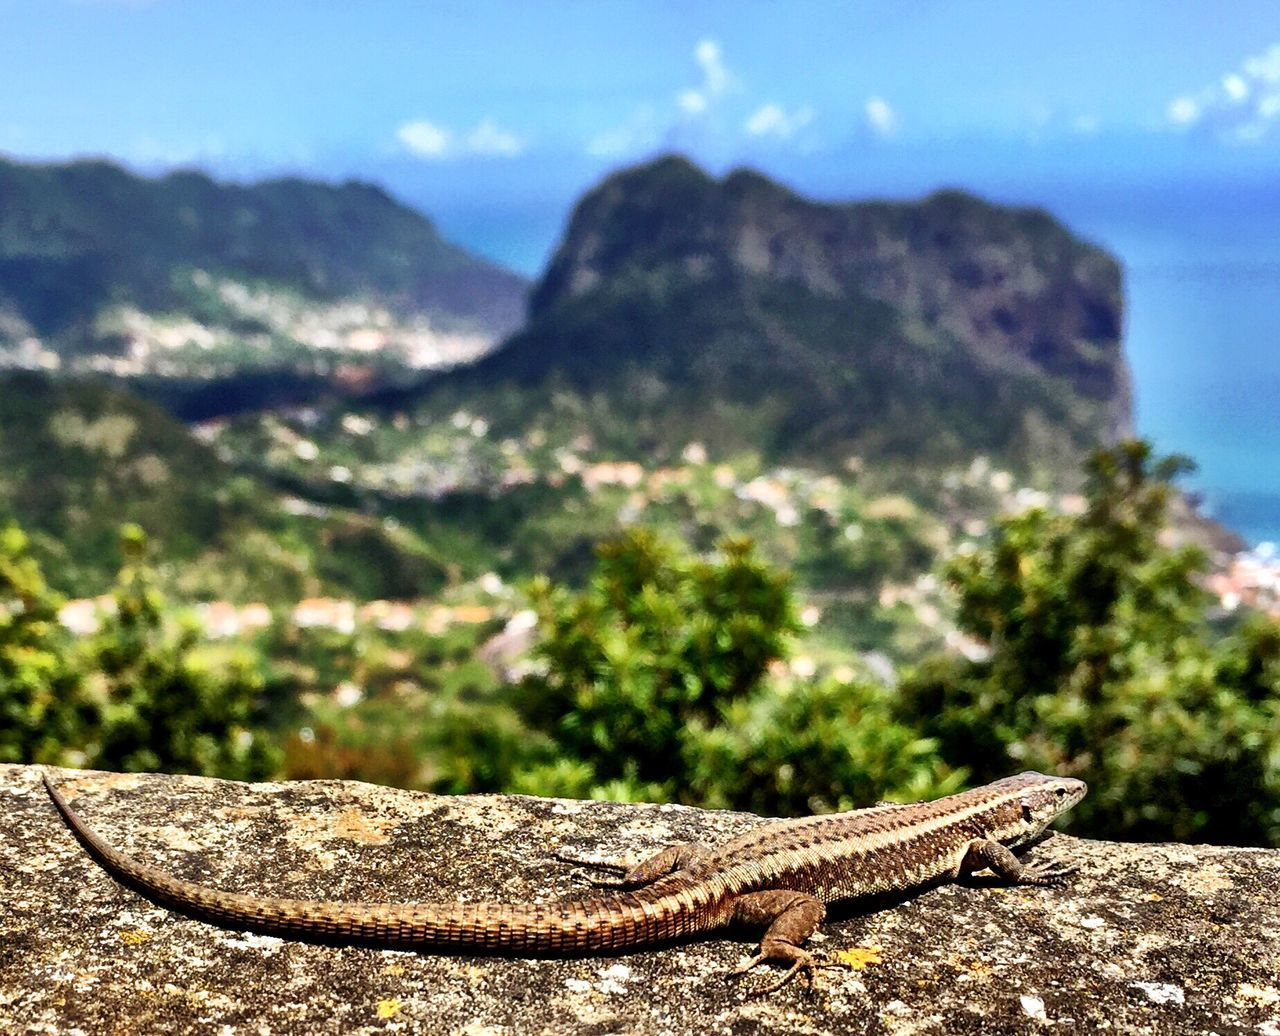 reptile, one animal, mountain, animal themes, animals in the wild, lizard, no people, outdoors, focus on foreground, nature, day, rock - object, bearded dragon, animal wildlife, close-up, beauty in nature